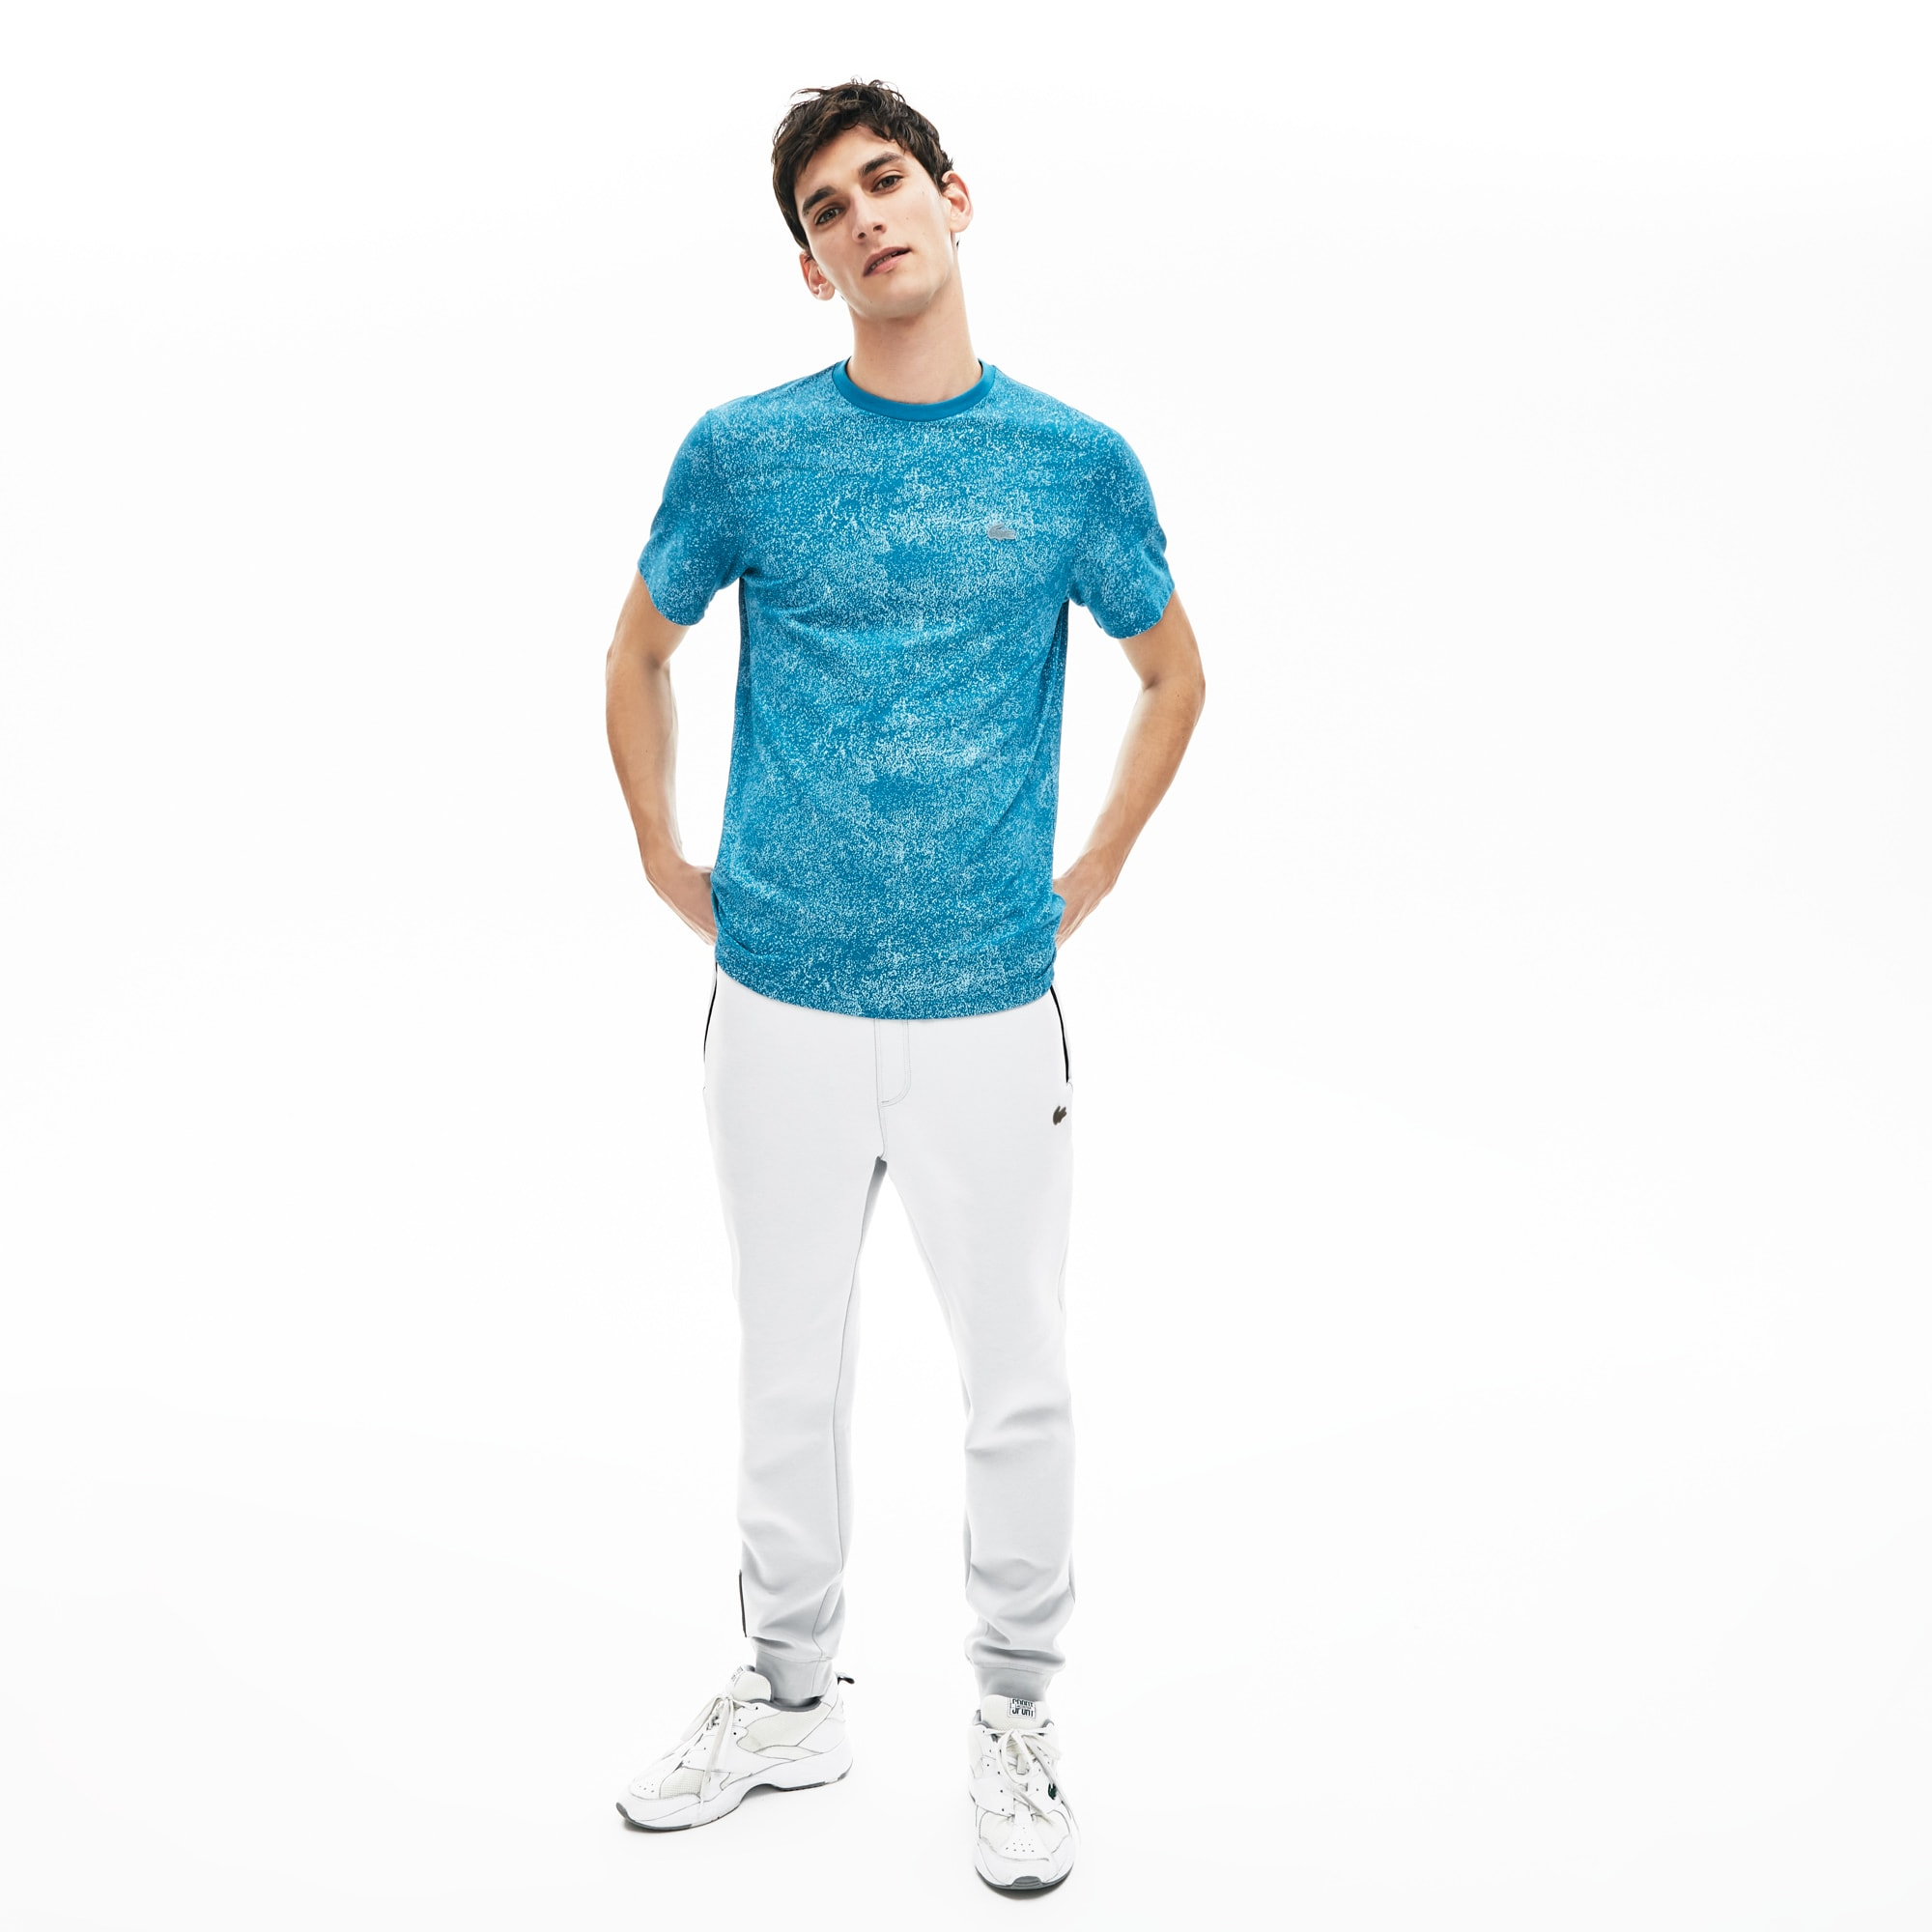 Men's Lacoste Motion Ultra-light Crew Neck T-shirt